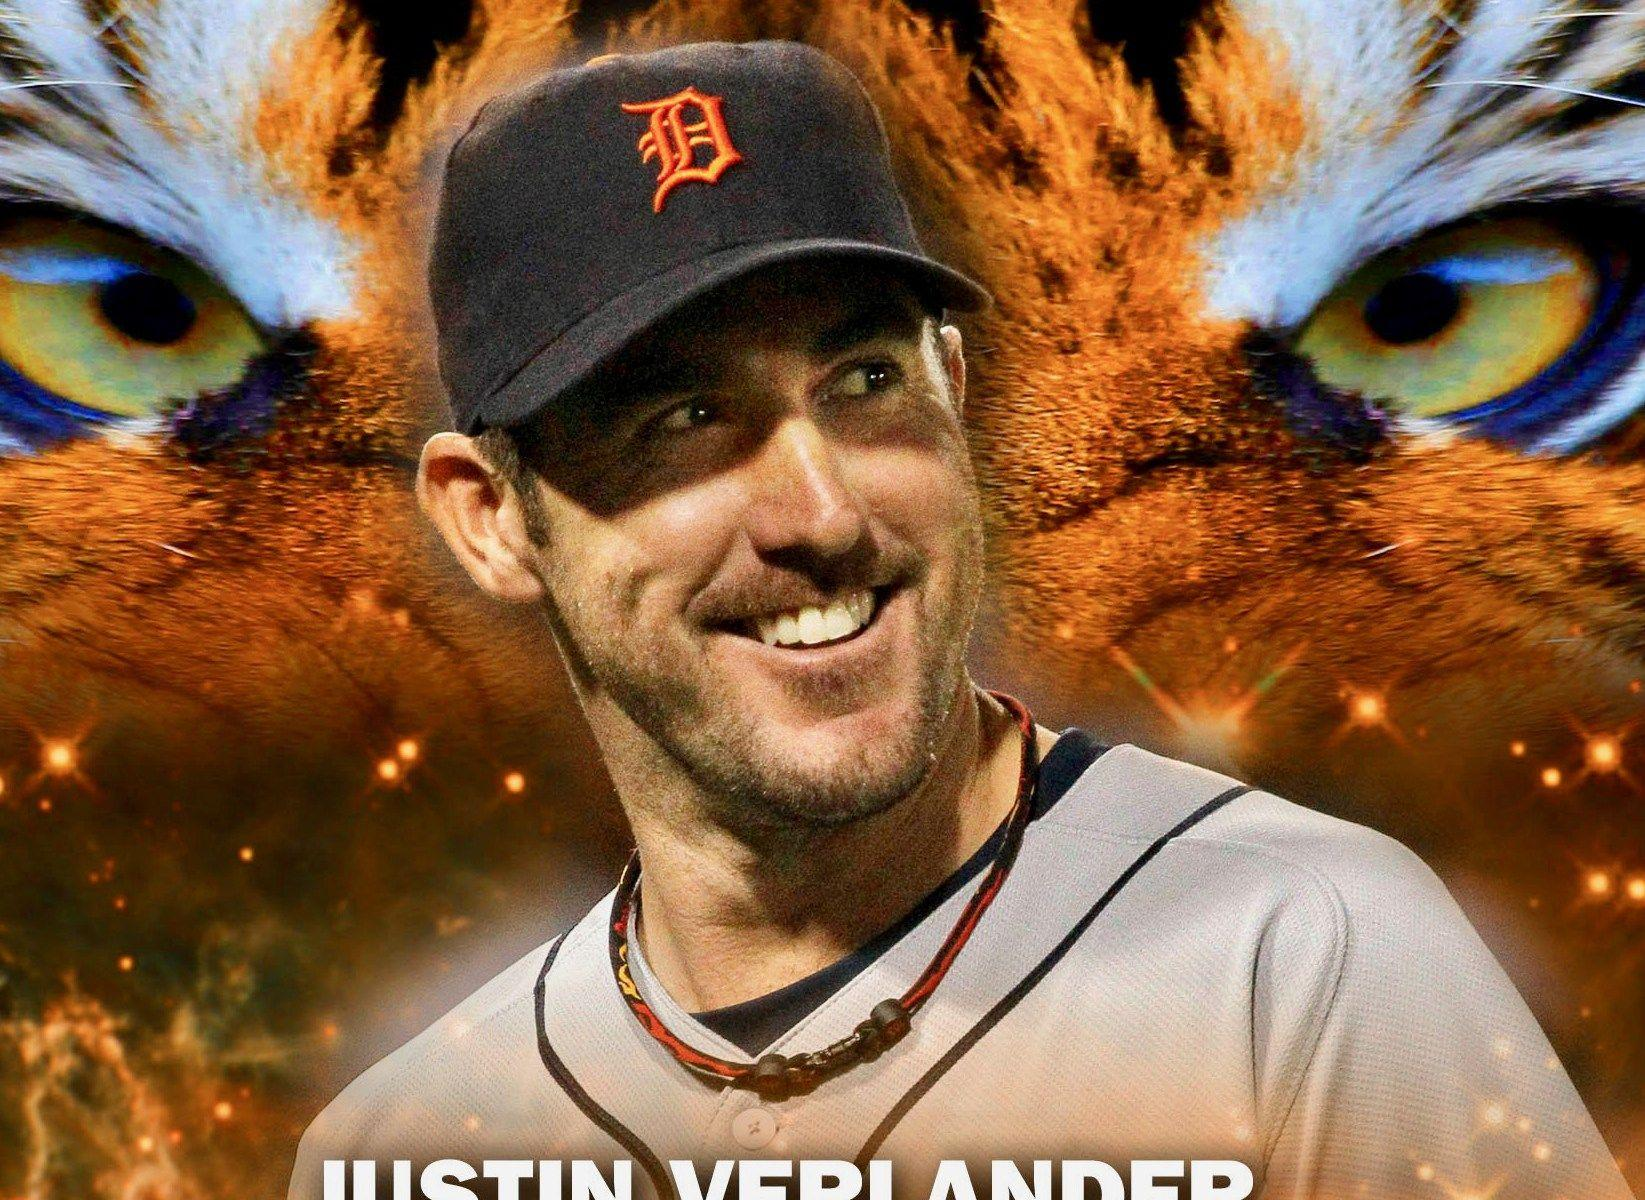 Could Justin Verlander be Traded? | Ben's Sports World!